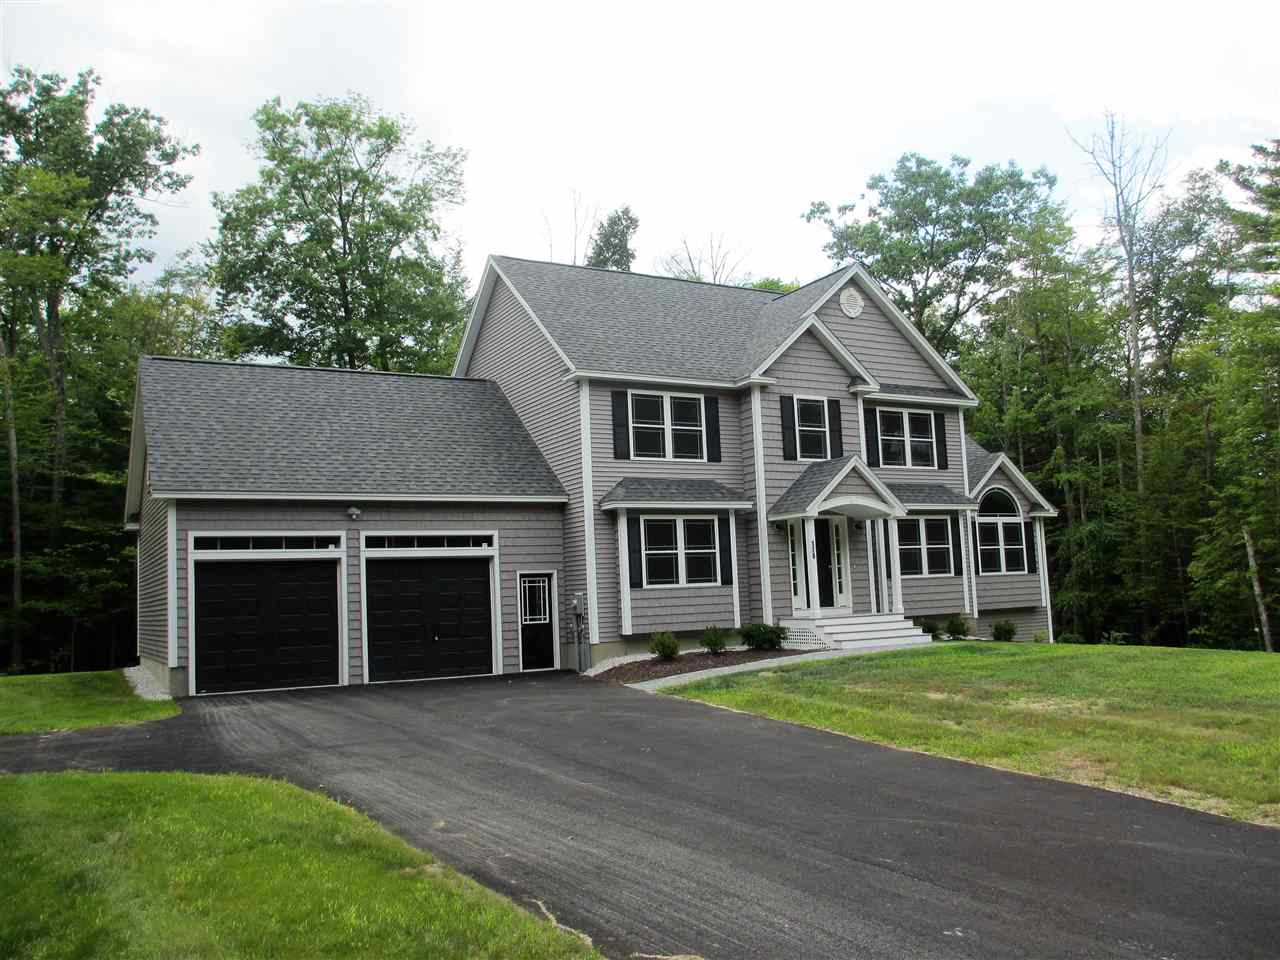 Photo of 179 FISK Road Concord NH 03301